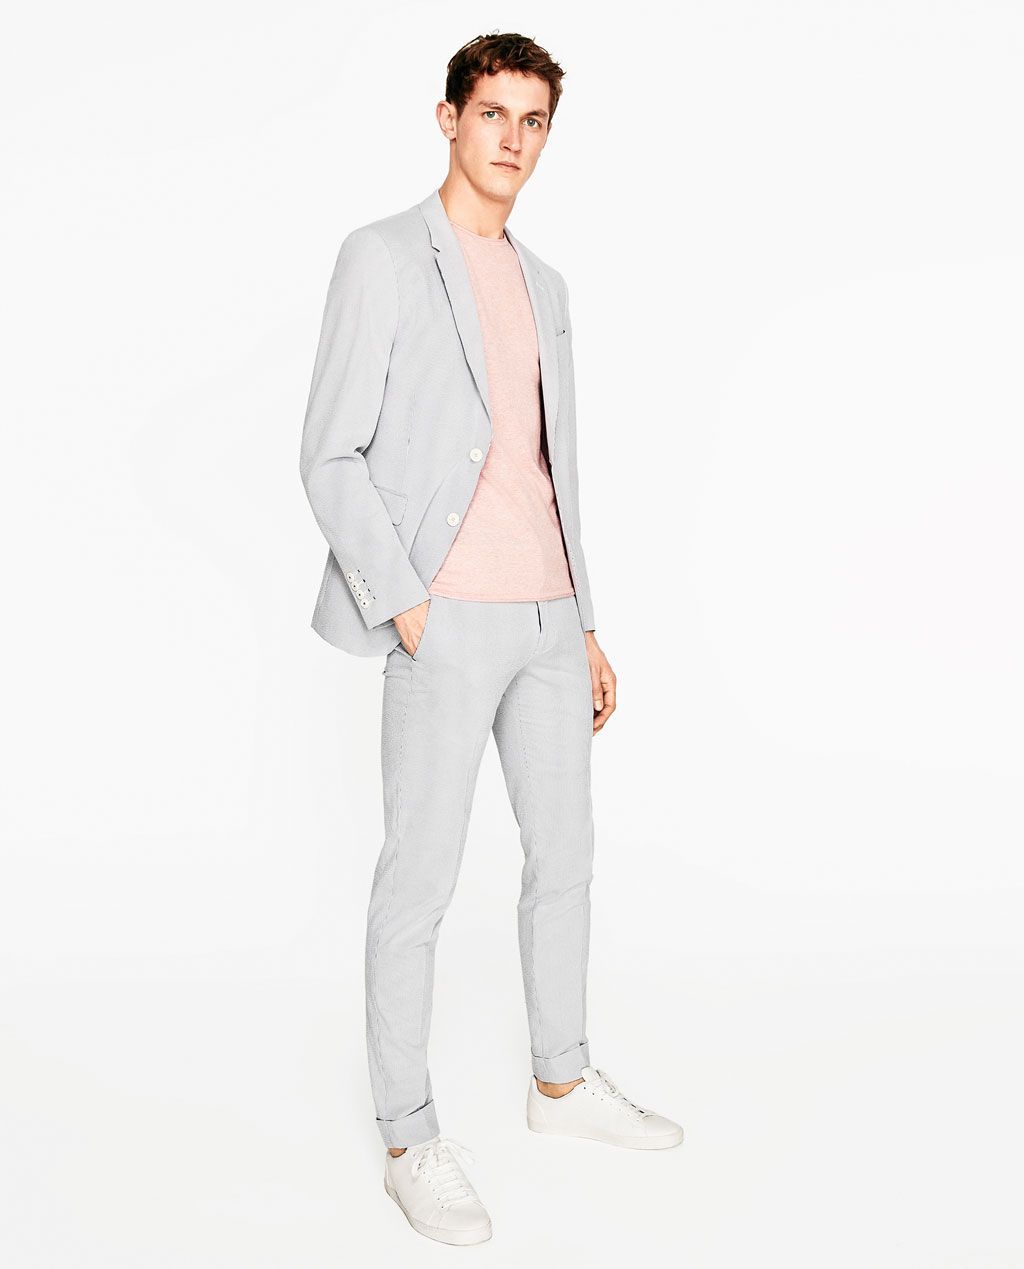 a6e293cf31 Men's Slim Fit Suits | ZARA United States | Suiting - Smart Styling ...